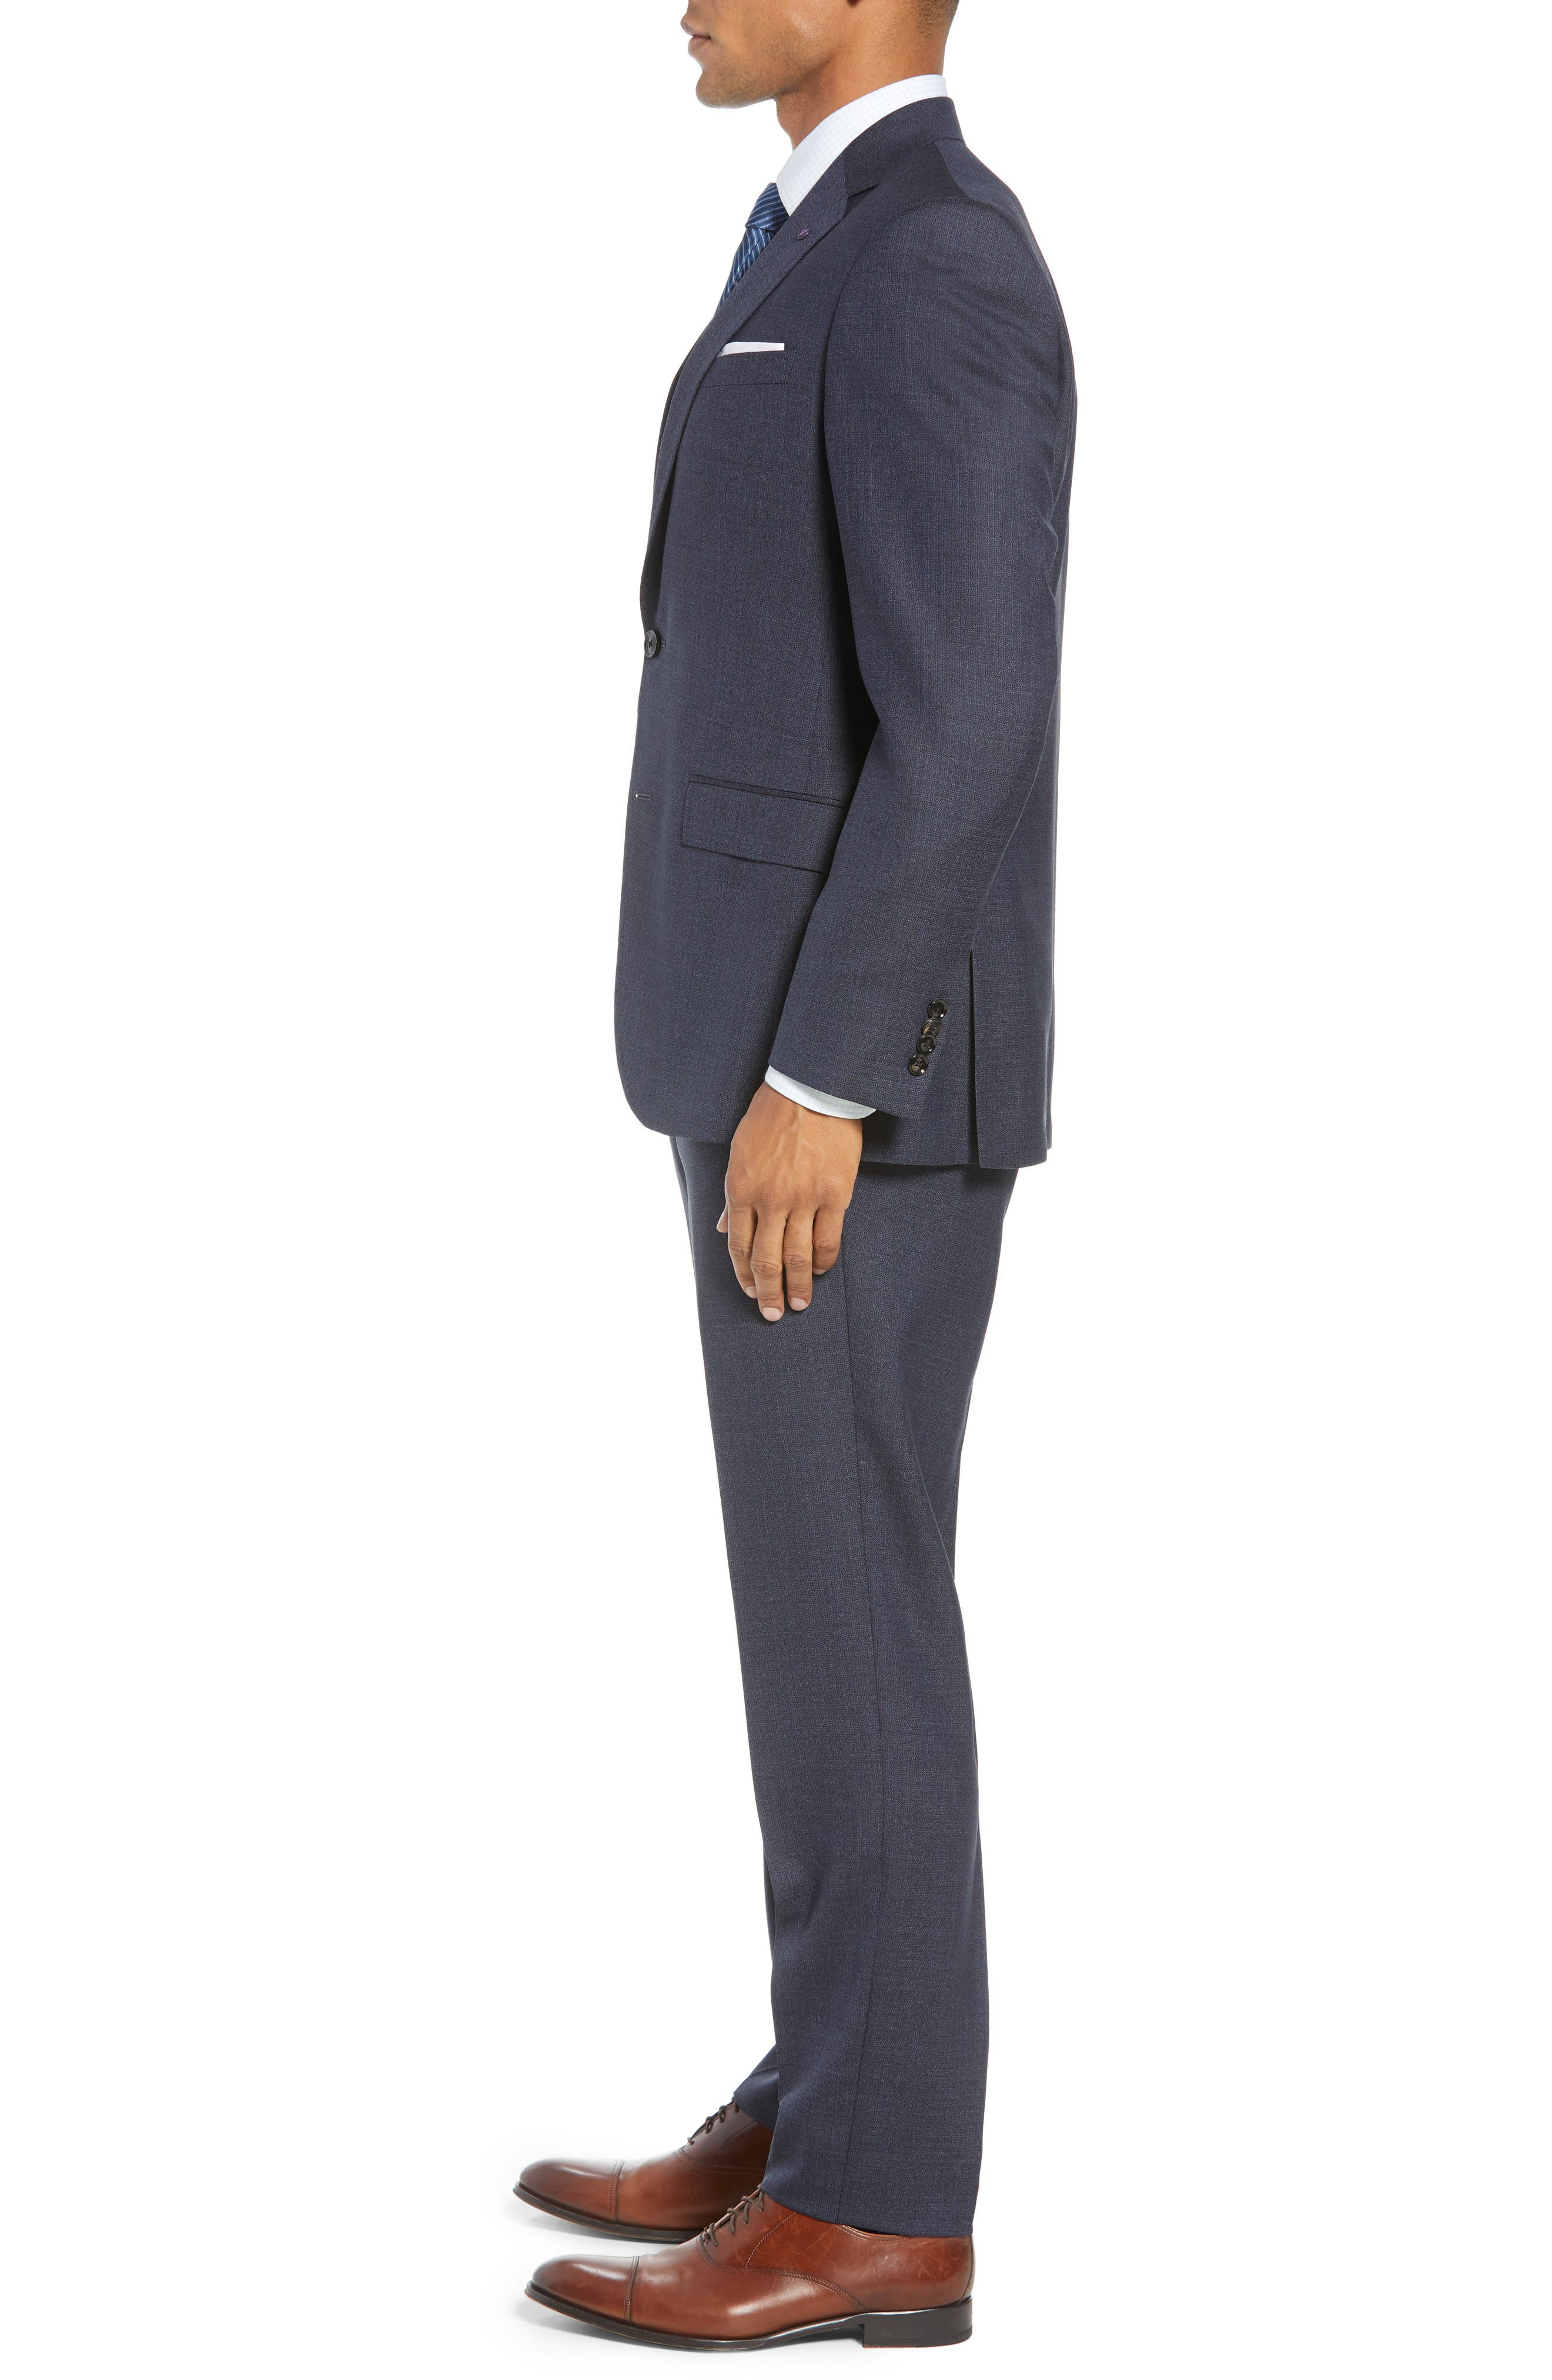 Jay Trim Fit Solid Wool Suit,                             Alternate thumbnail 3, color,                             020